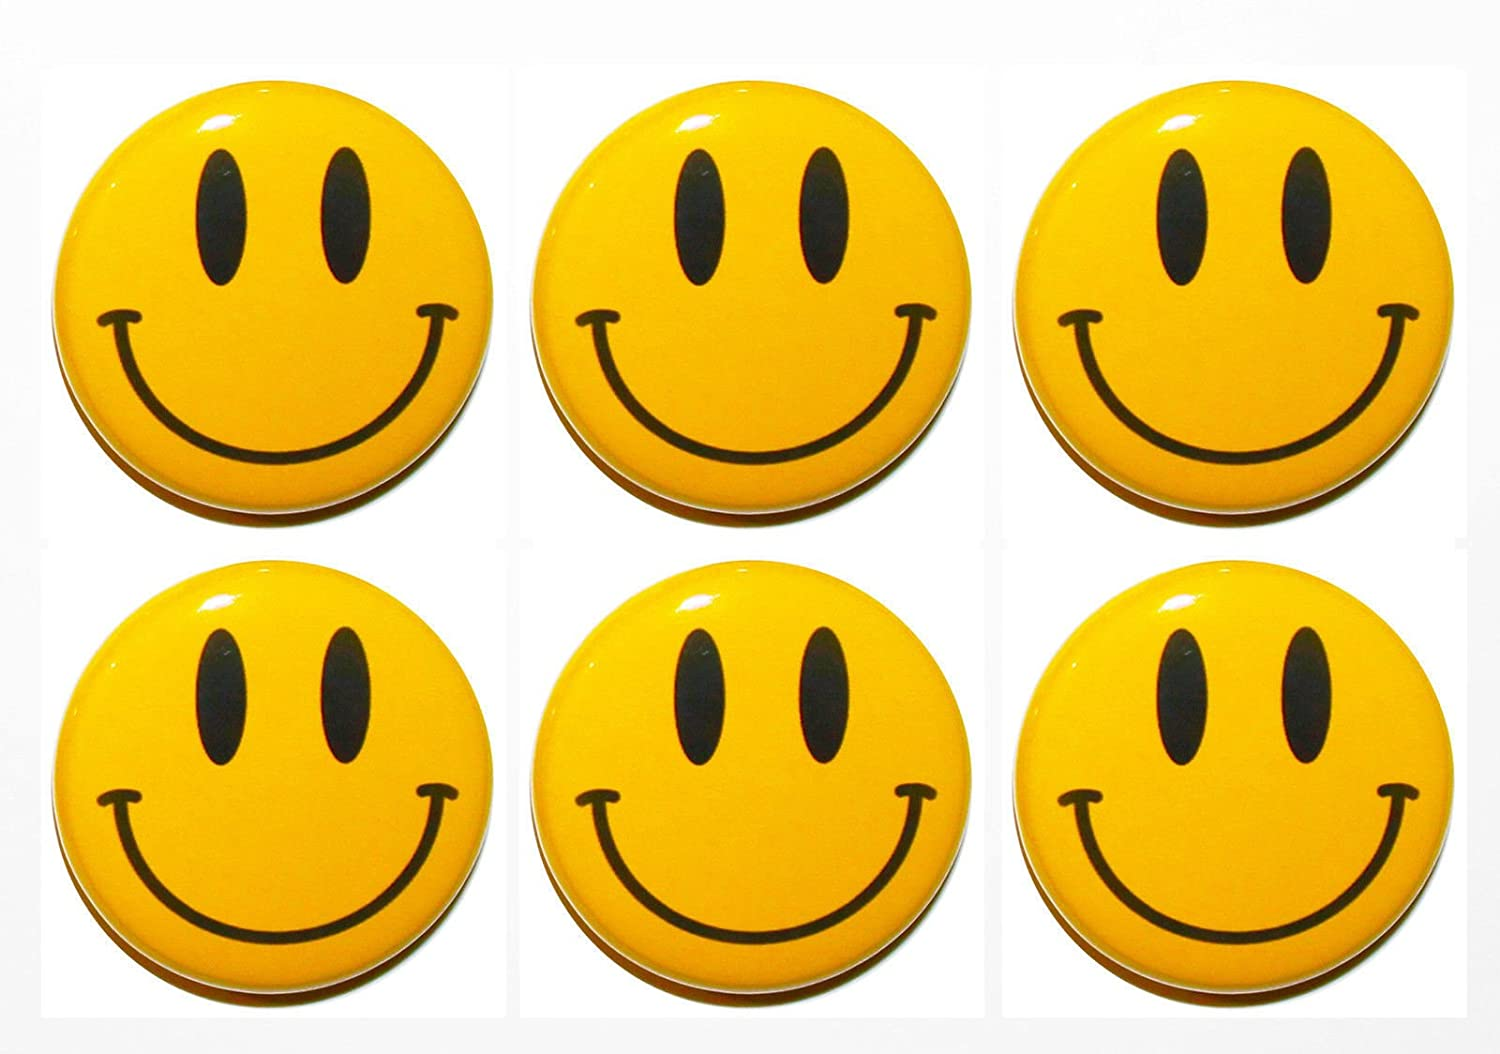 SET OF 6 NOVELTY YELLOW SMILEY HAPPY FACE FRIDGE MAGNETS 3CM GIFT,HOME,KITCHEN SMILEY FACE MAGNET